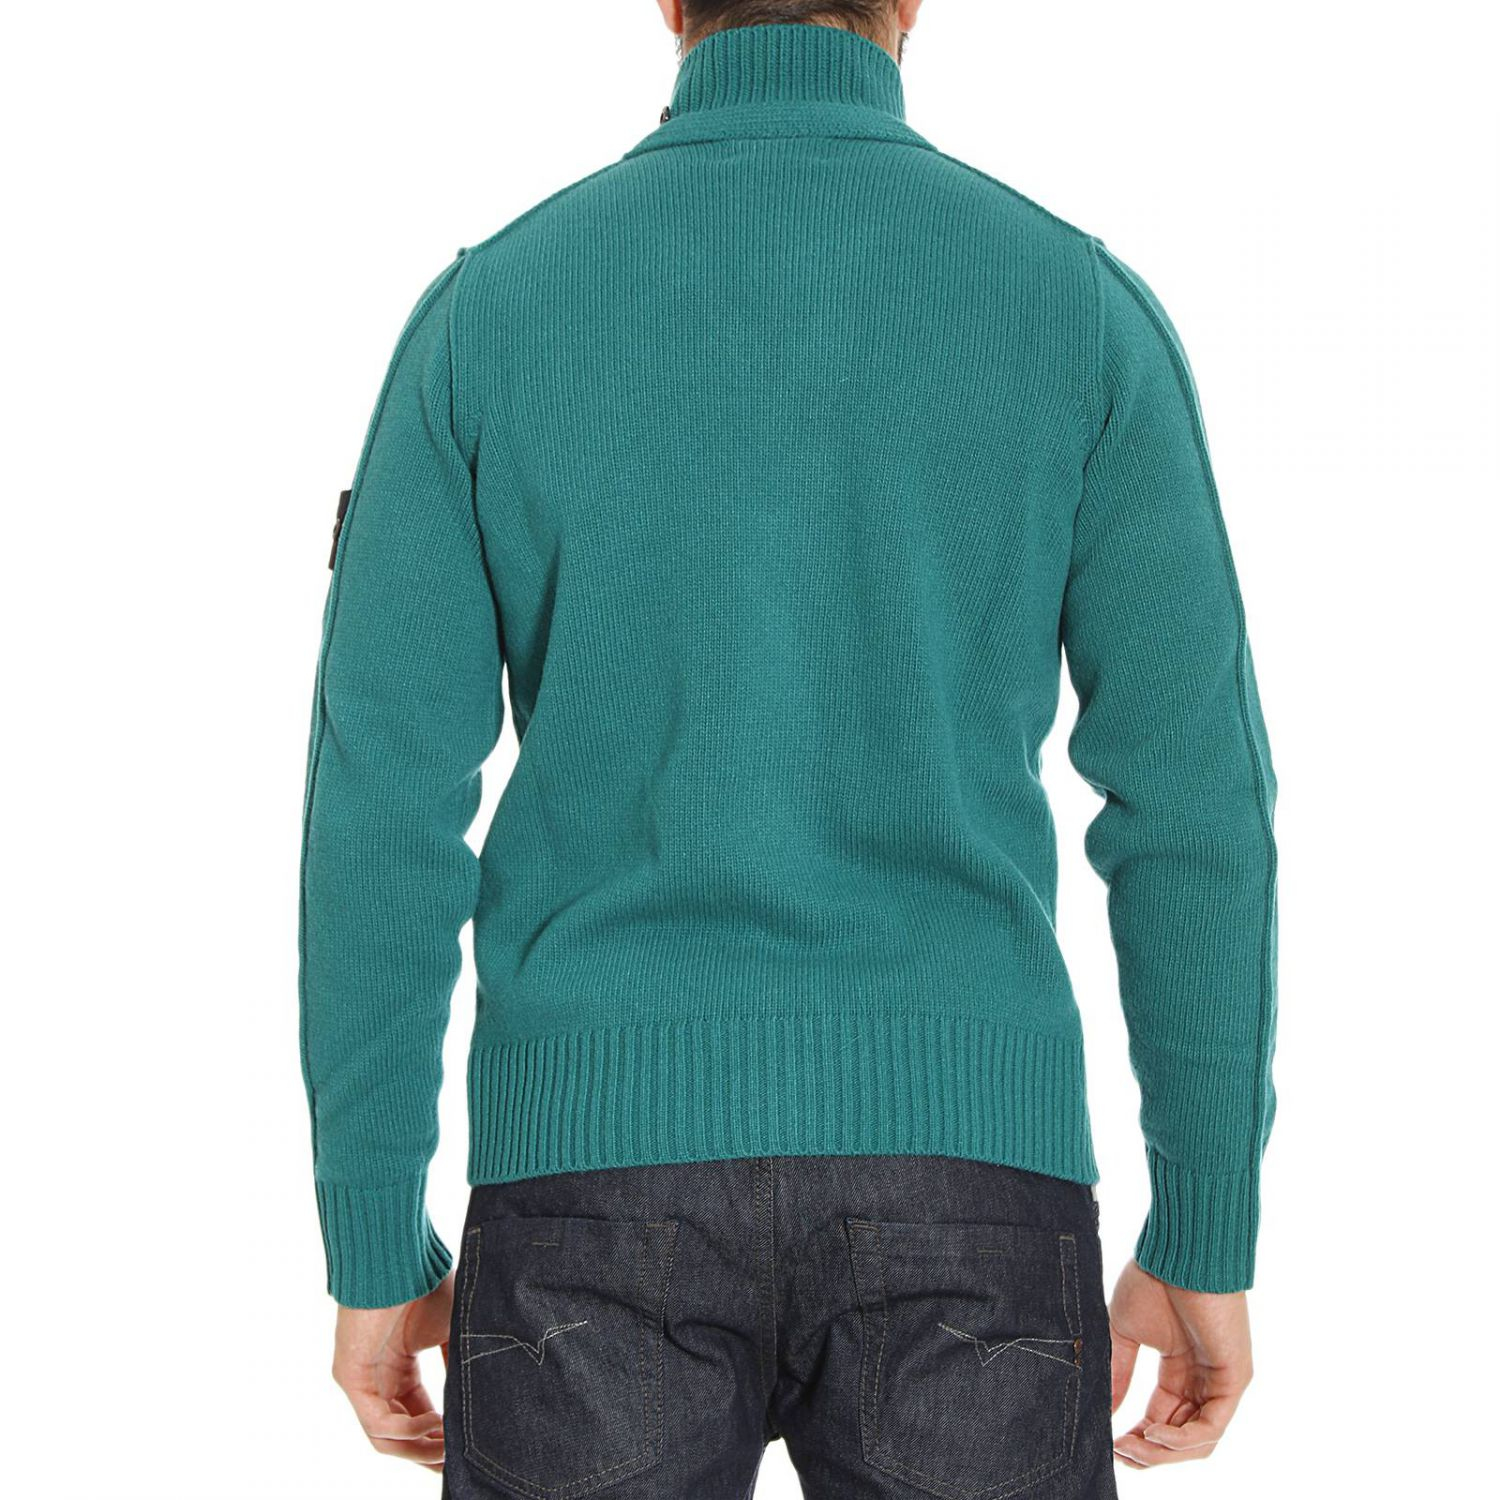 stone island sweater lambswool cardigan zip and button in green for men lyst. Black Bedroom Furniture Sets. Home Design Ideas